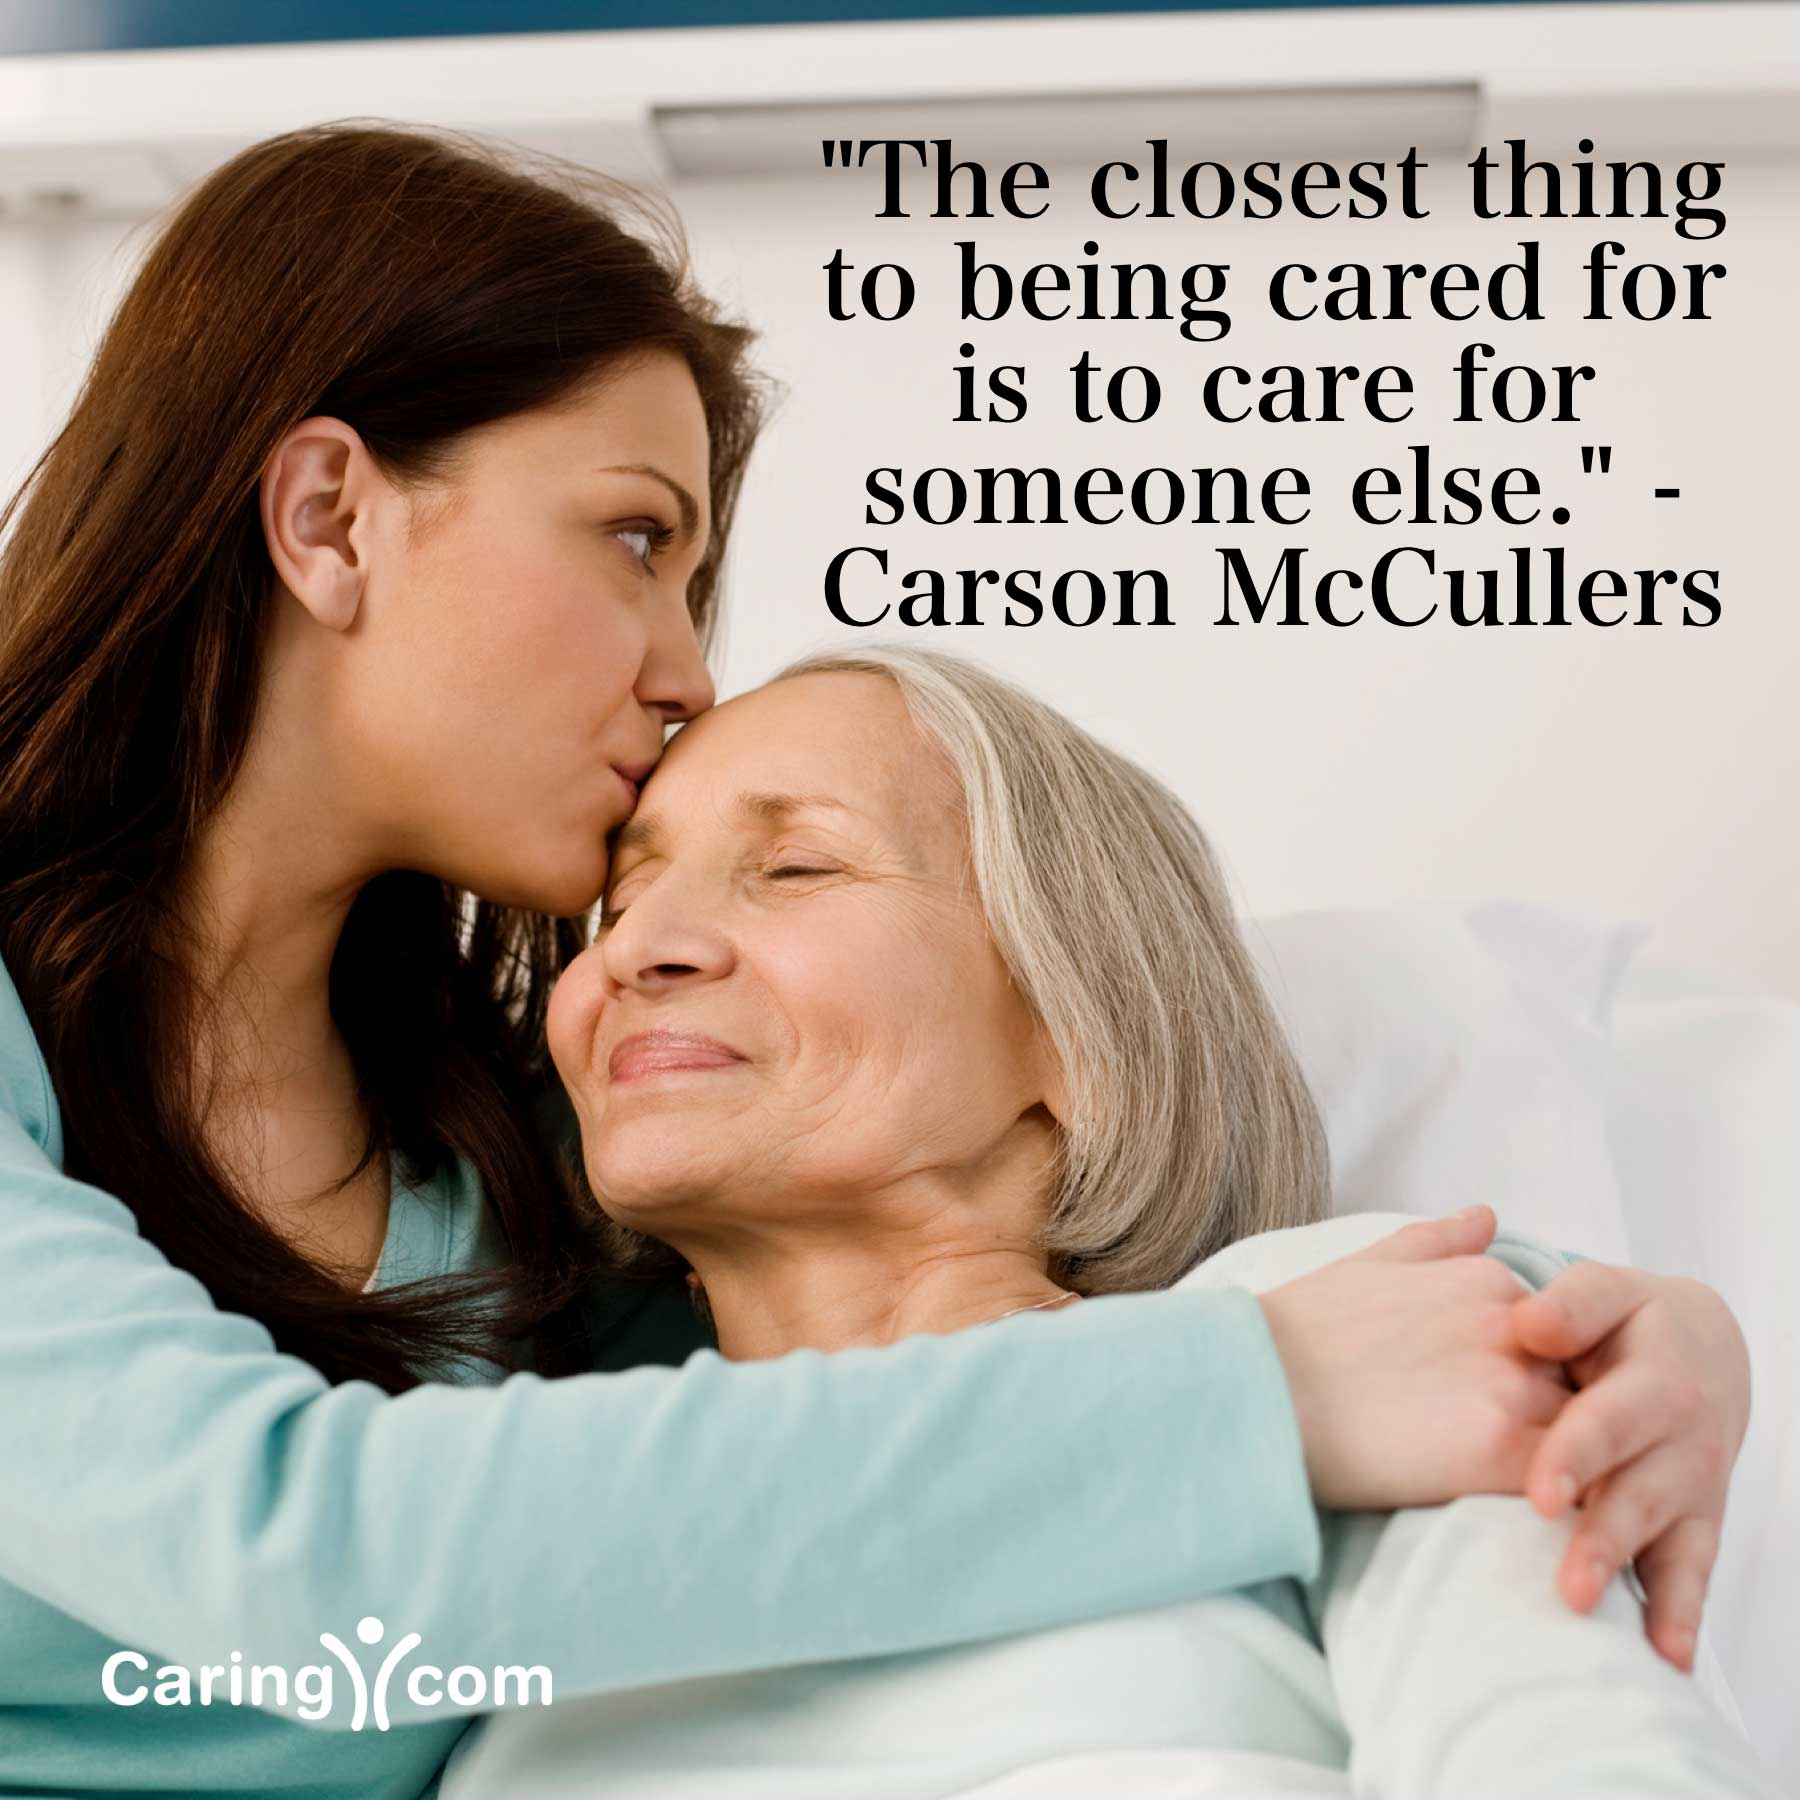 Inspirational Quote from Carson McCullers